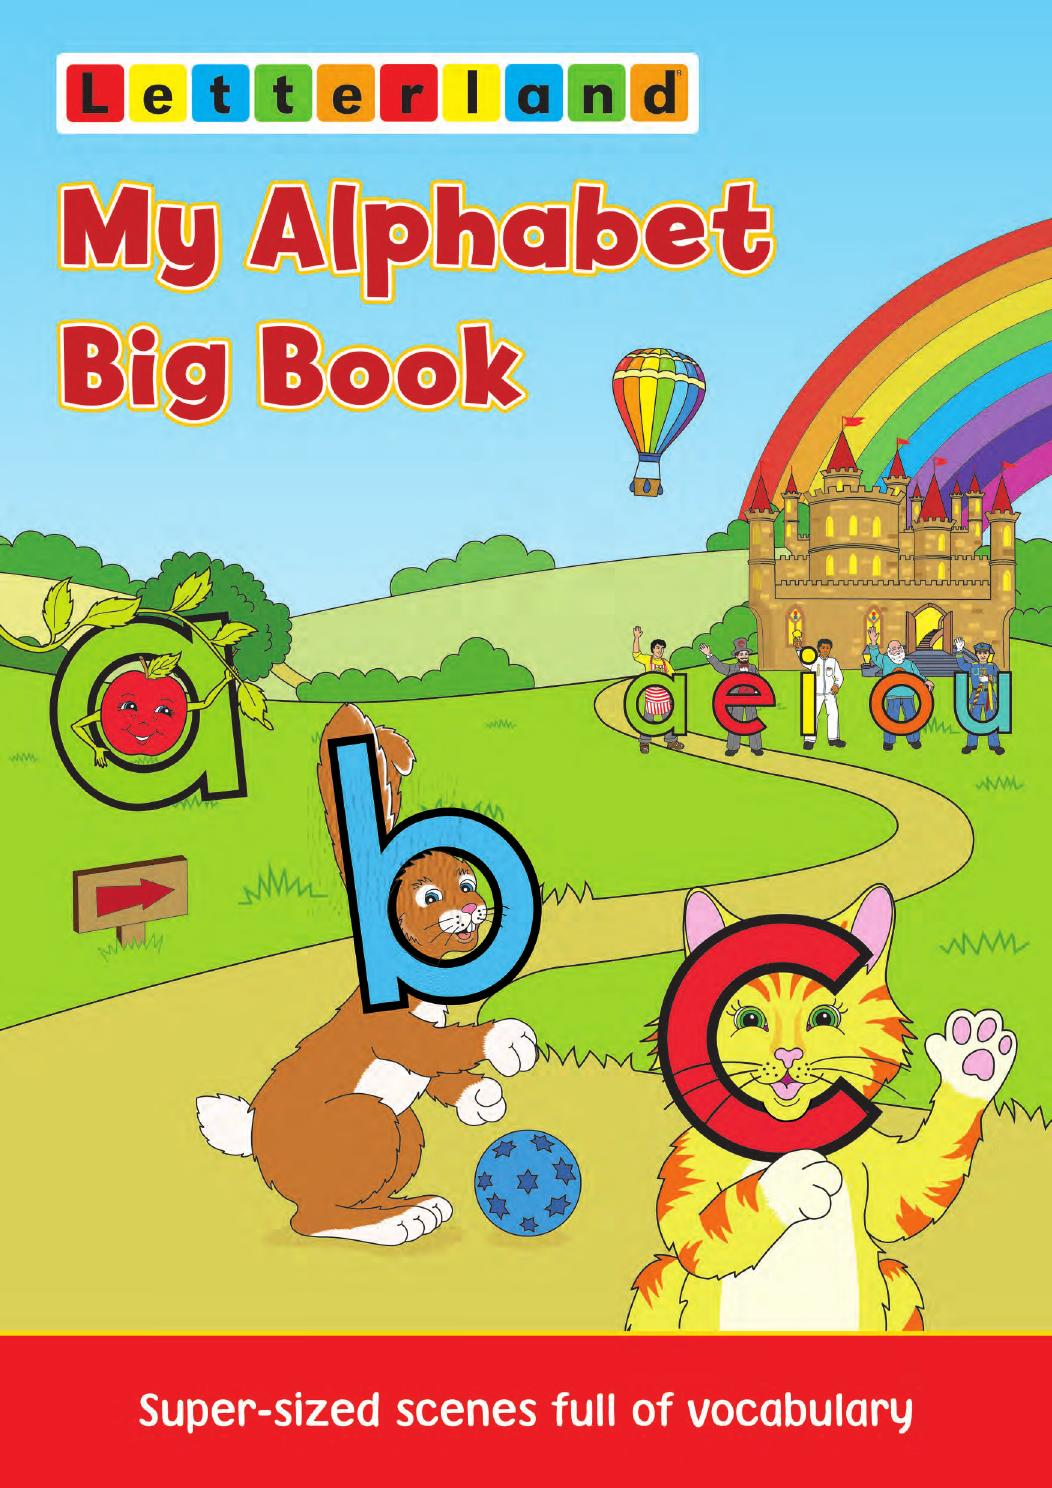 Children Book Cover Page ~ My alphabet big book by letterland issuu